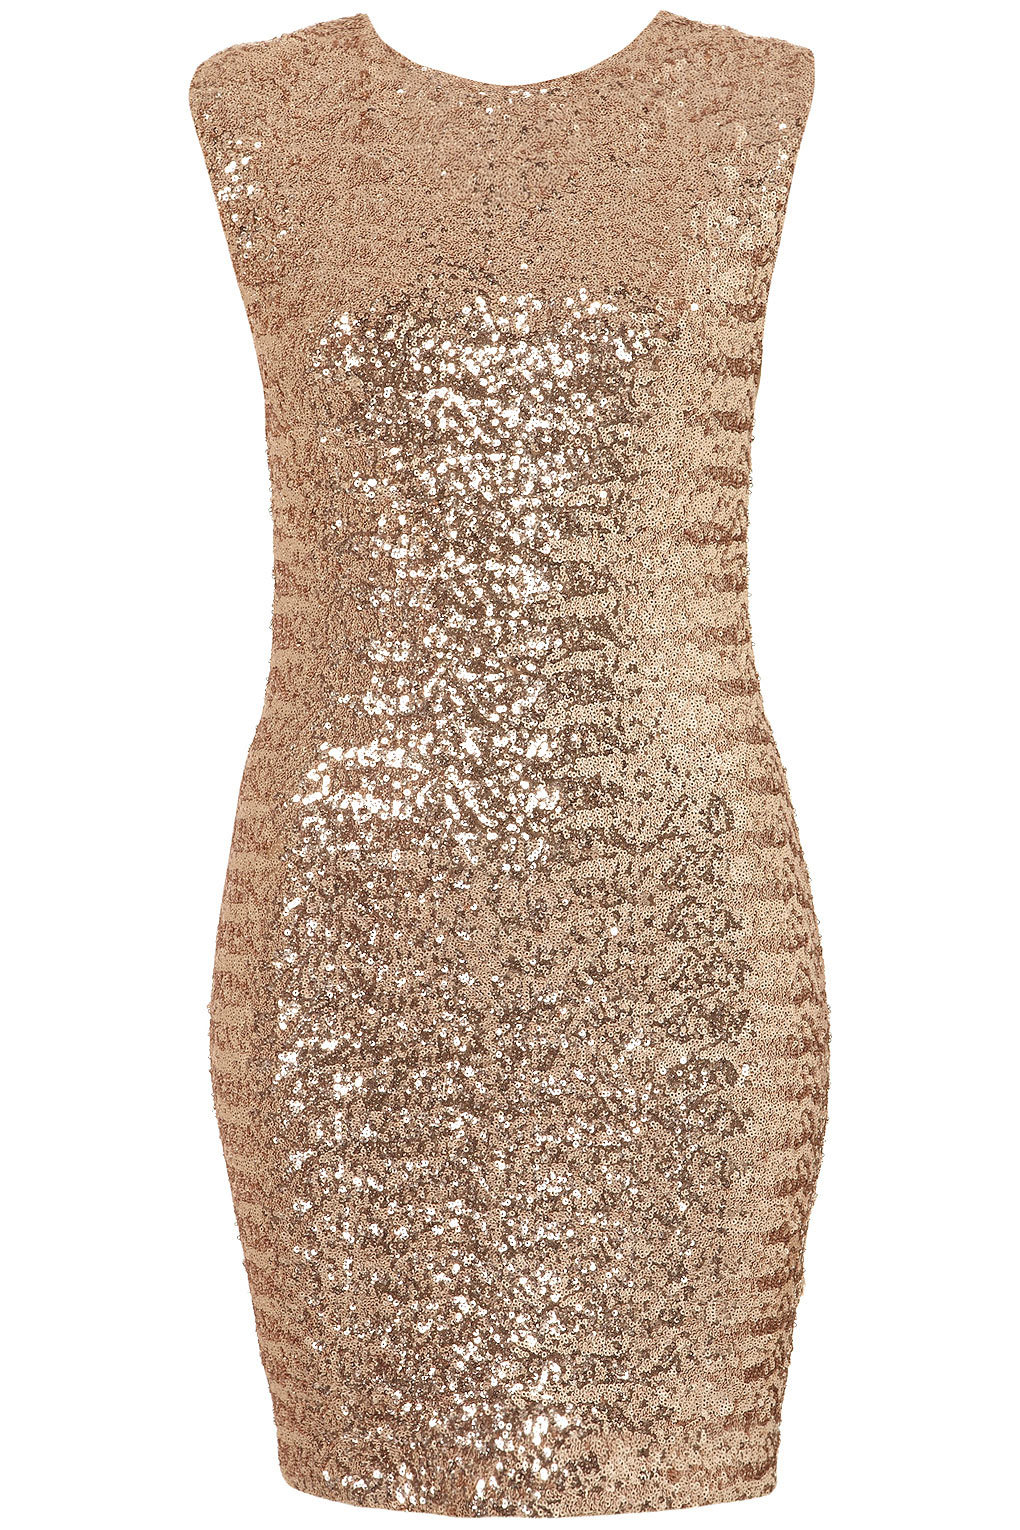 Sparkly-champagne-wedding-reception-dress-topshop.full